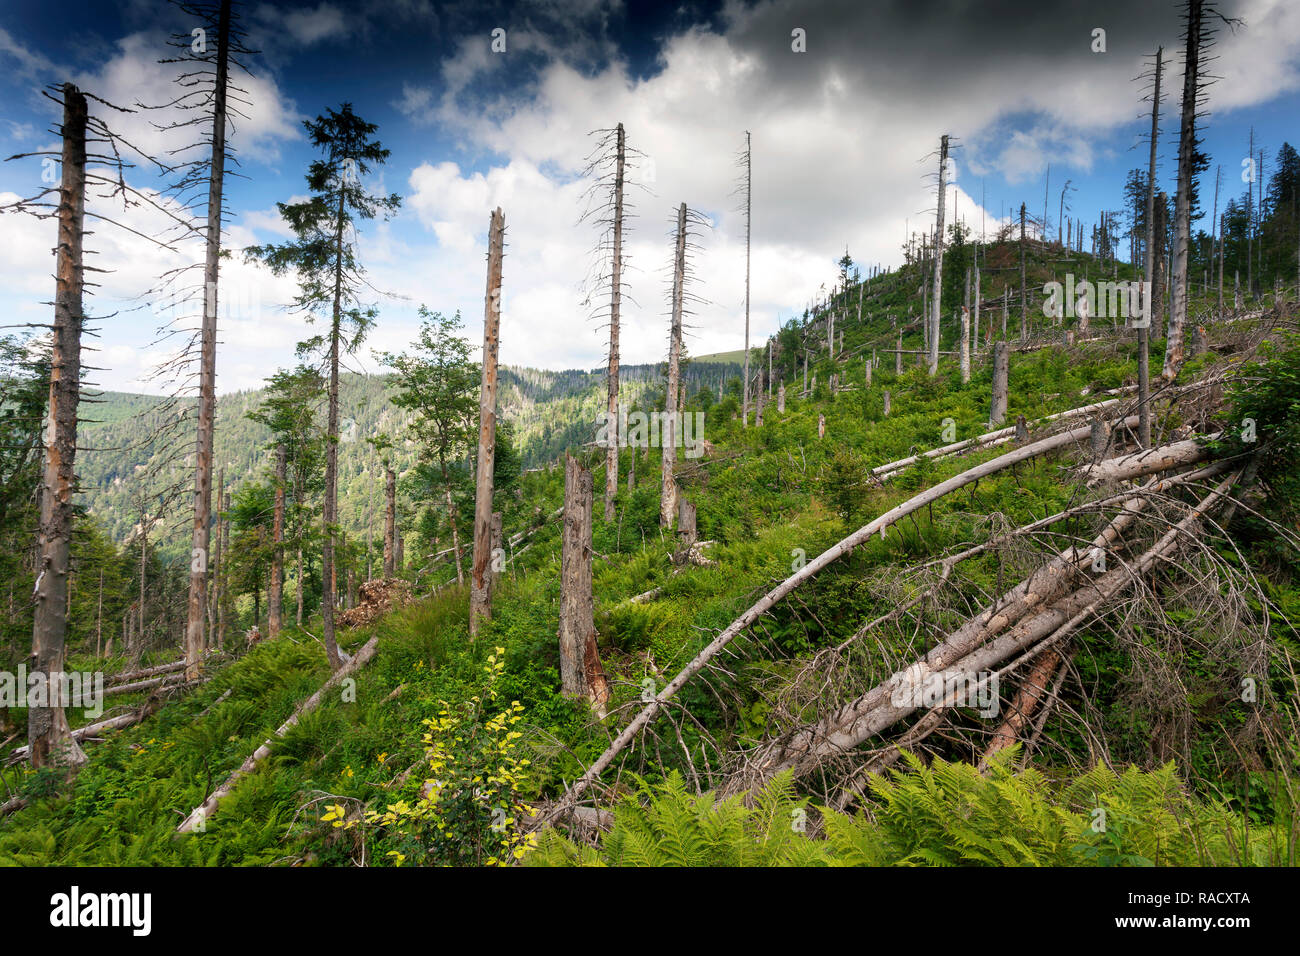 protected forest, Feldberg in the Black Forest - Stock Image